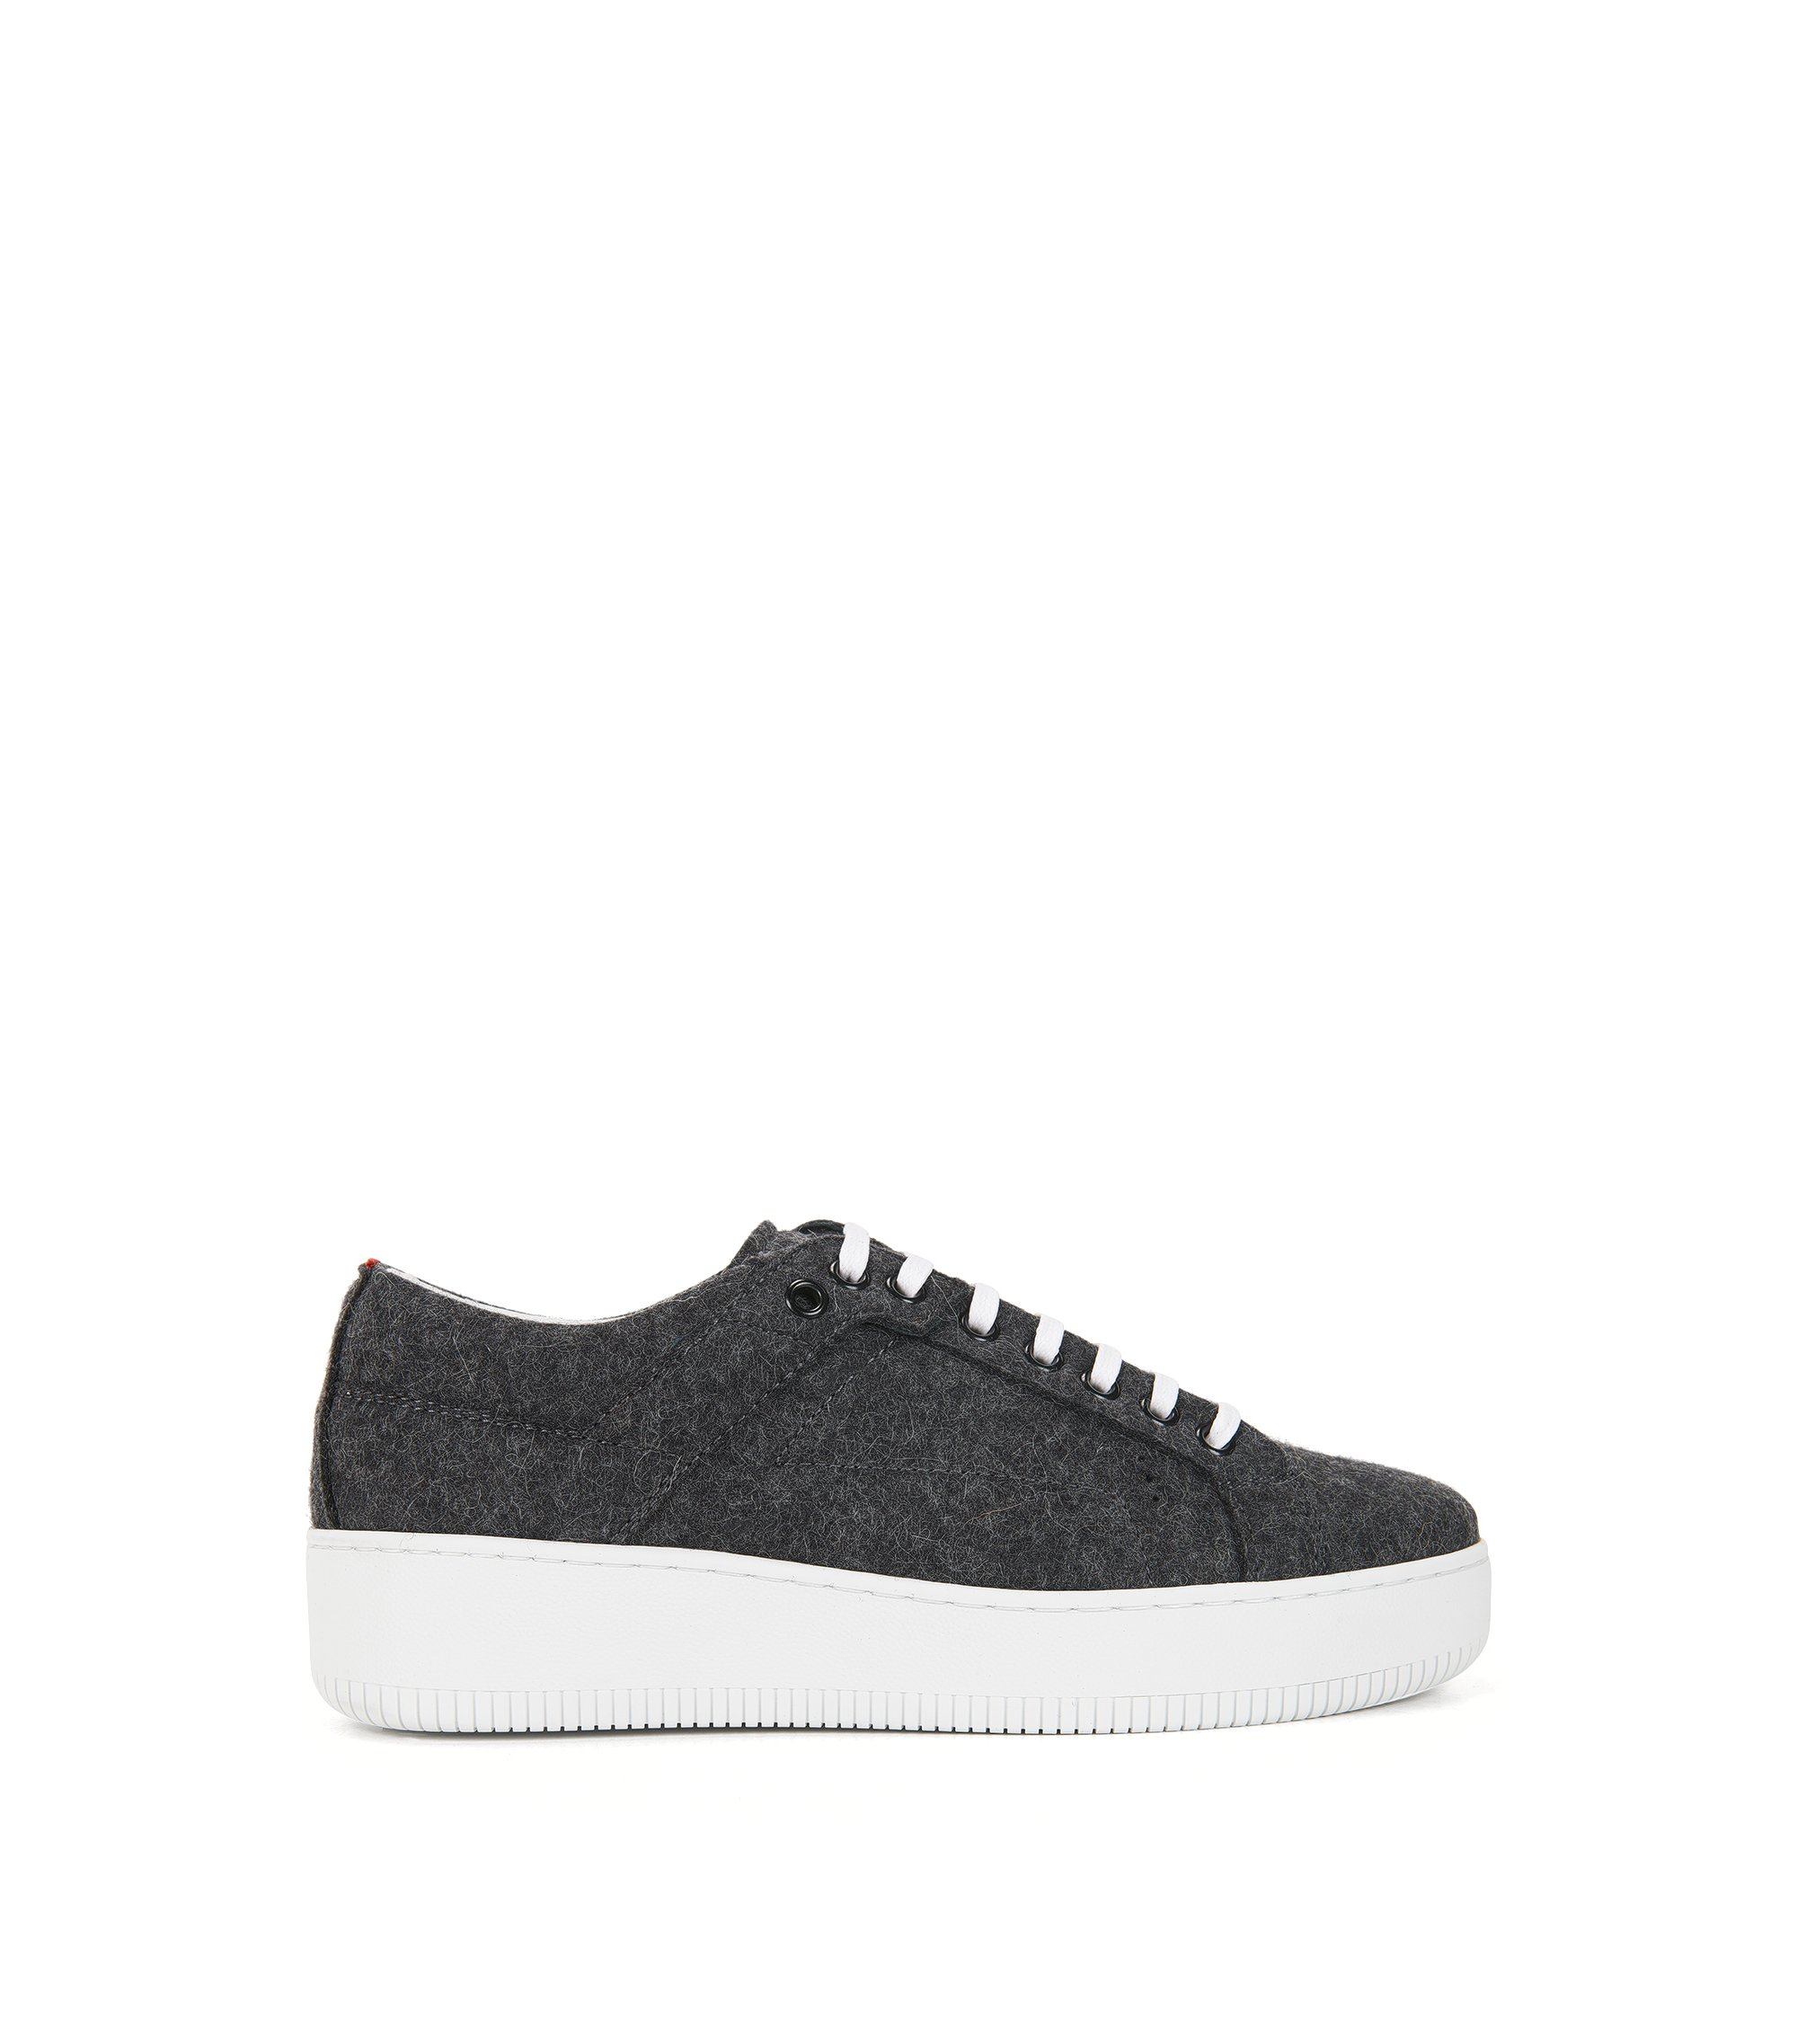 Sneakers met veters, van winterse wol, Antraciet